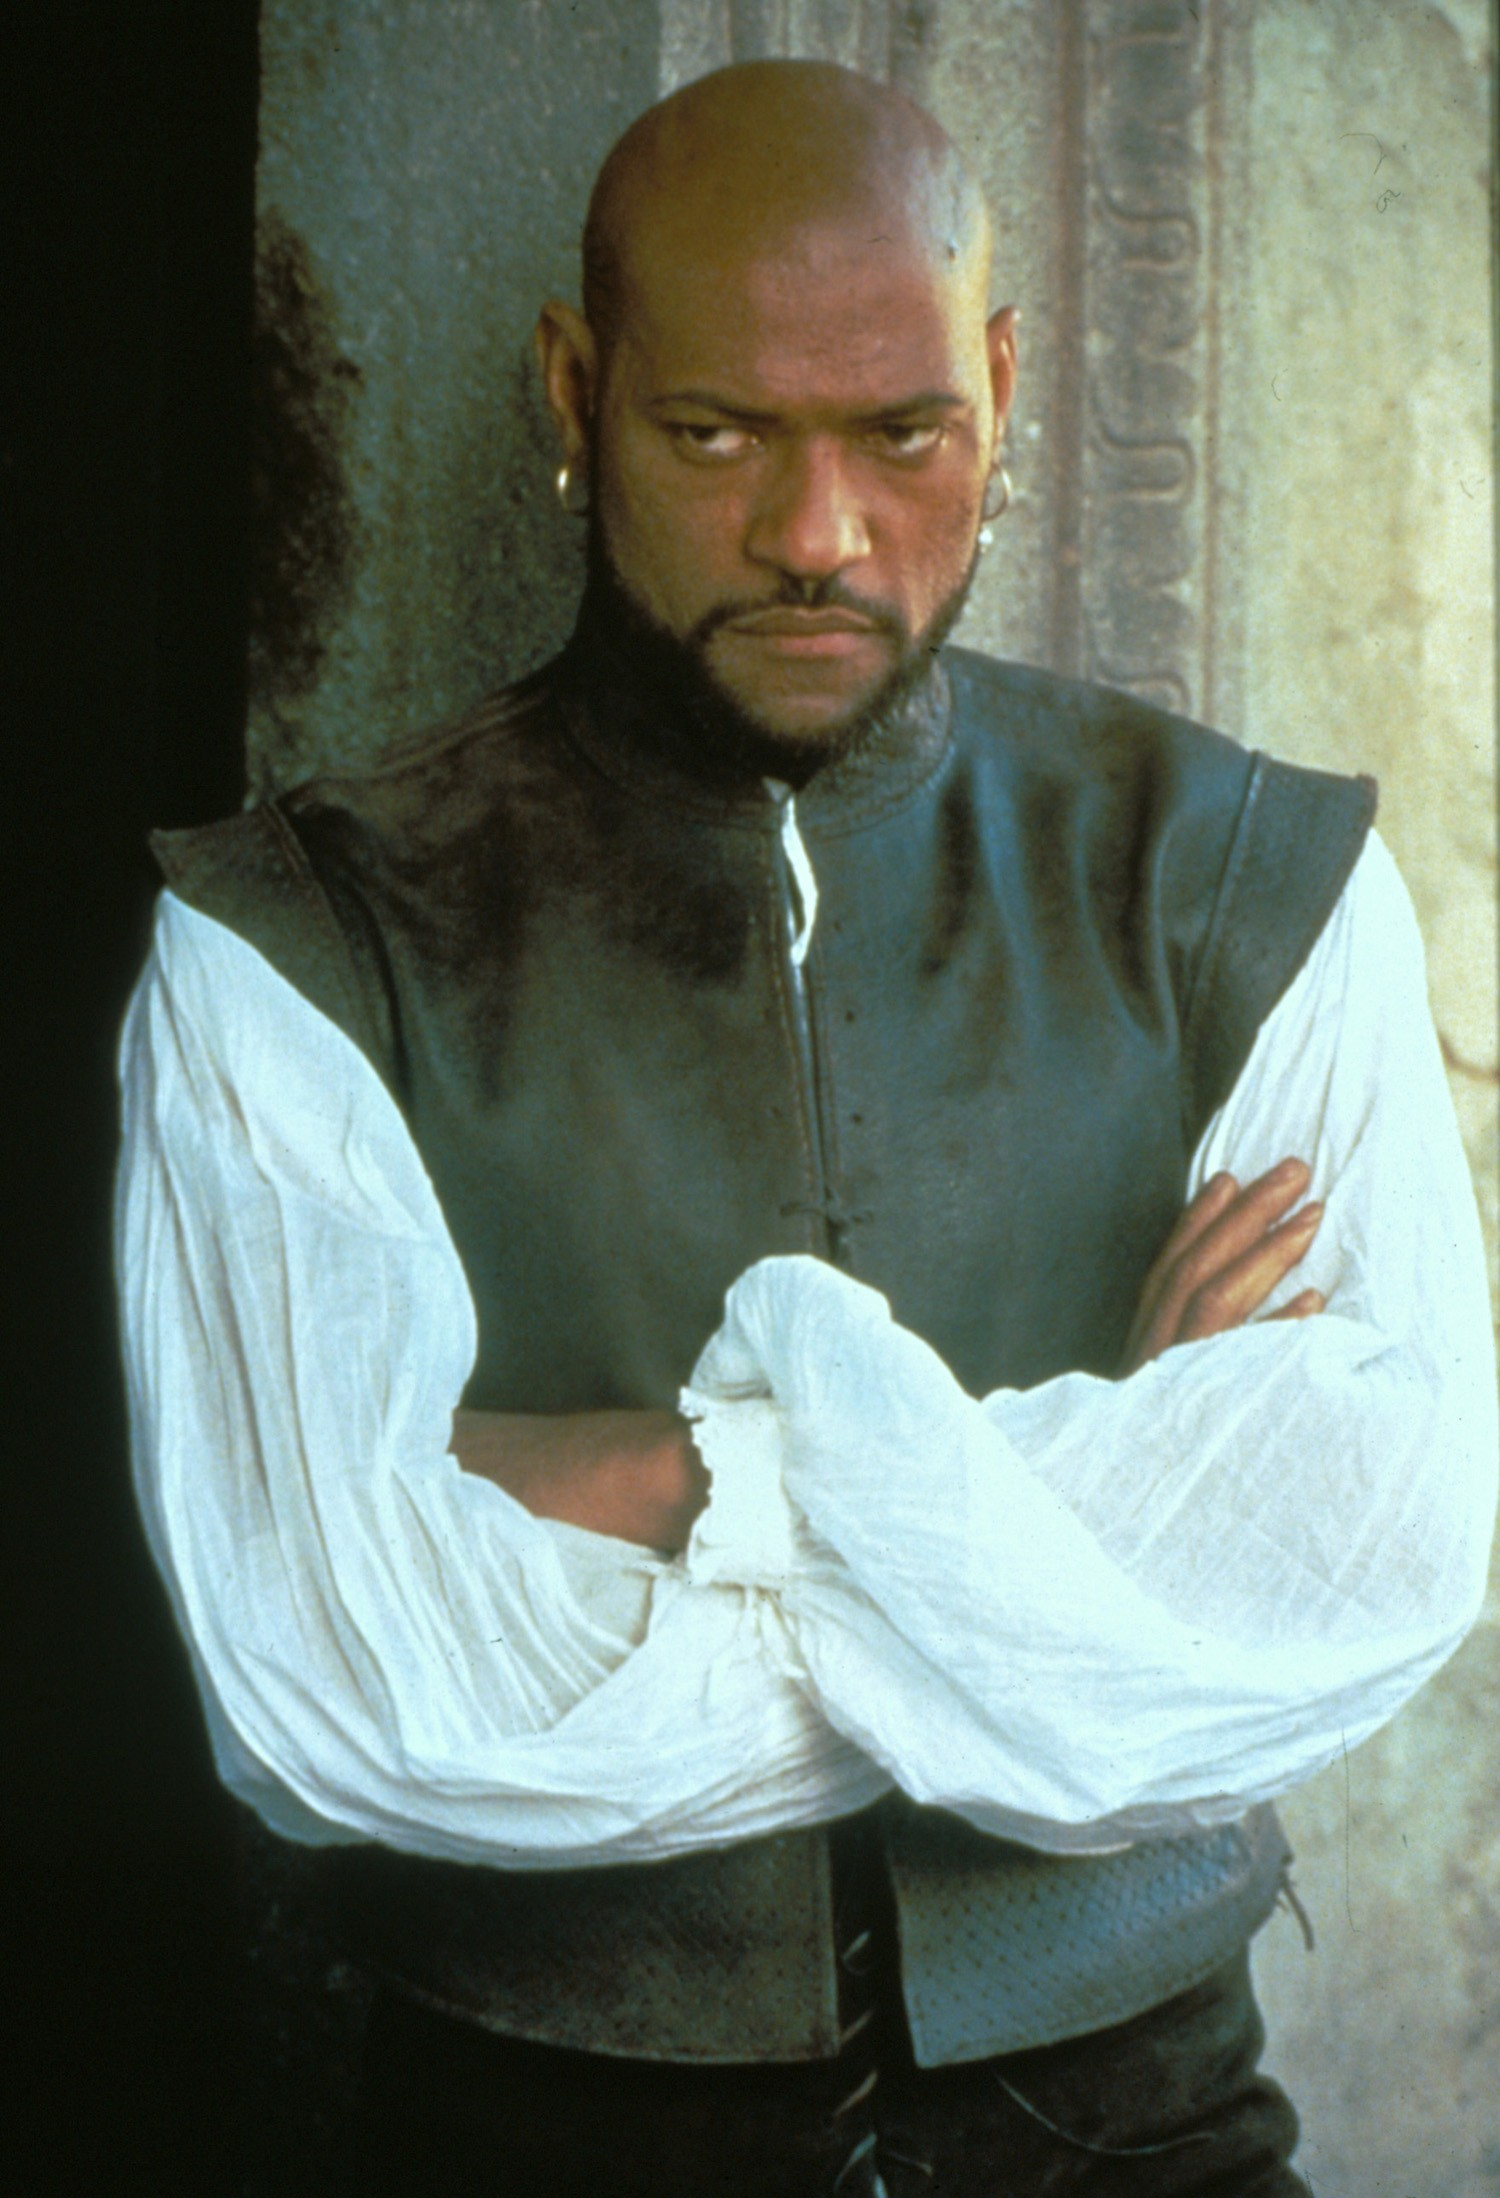 insecurity in othello Insecure - despite seeming confident, even arrogant on the outside, othello is actually quite insecure he accepts iago's suggestion that desdemona was somehow abnormal or strange when she chose.